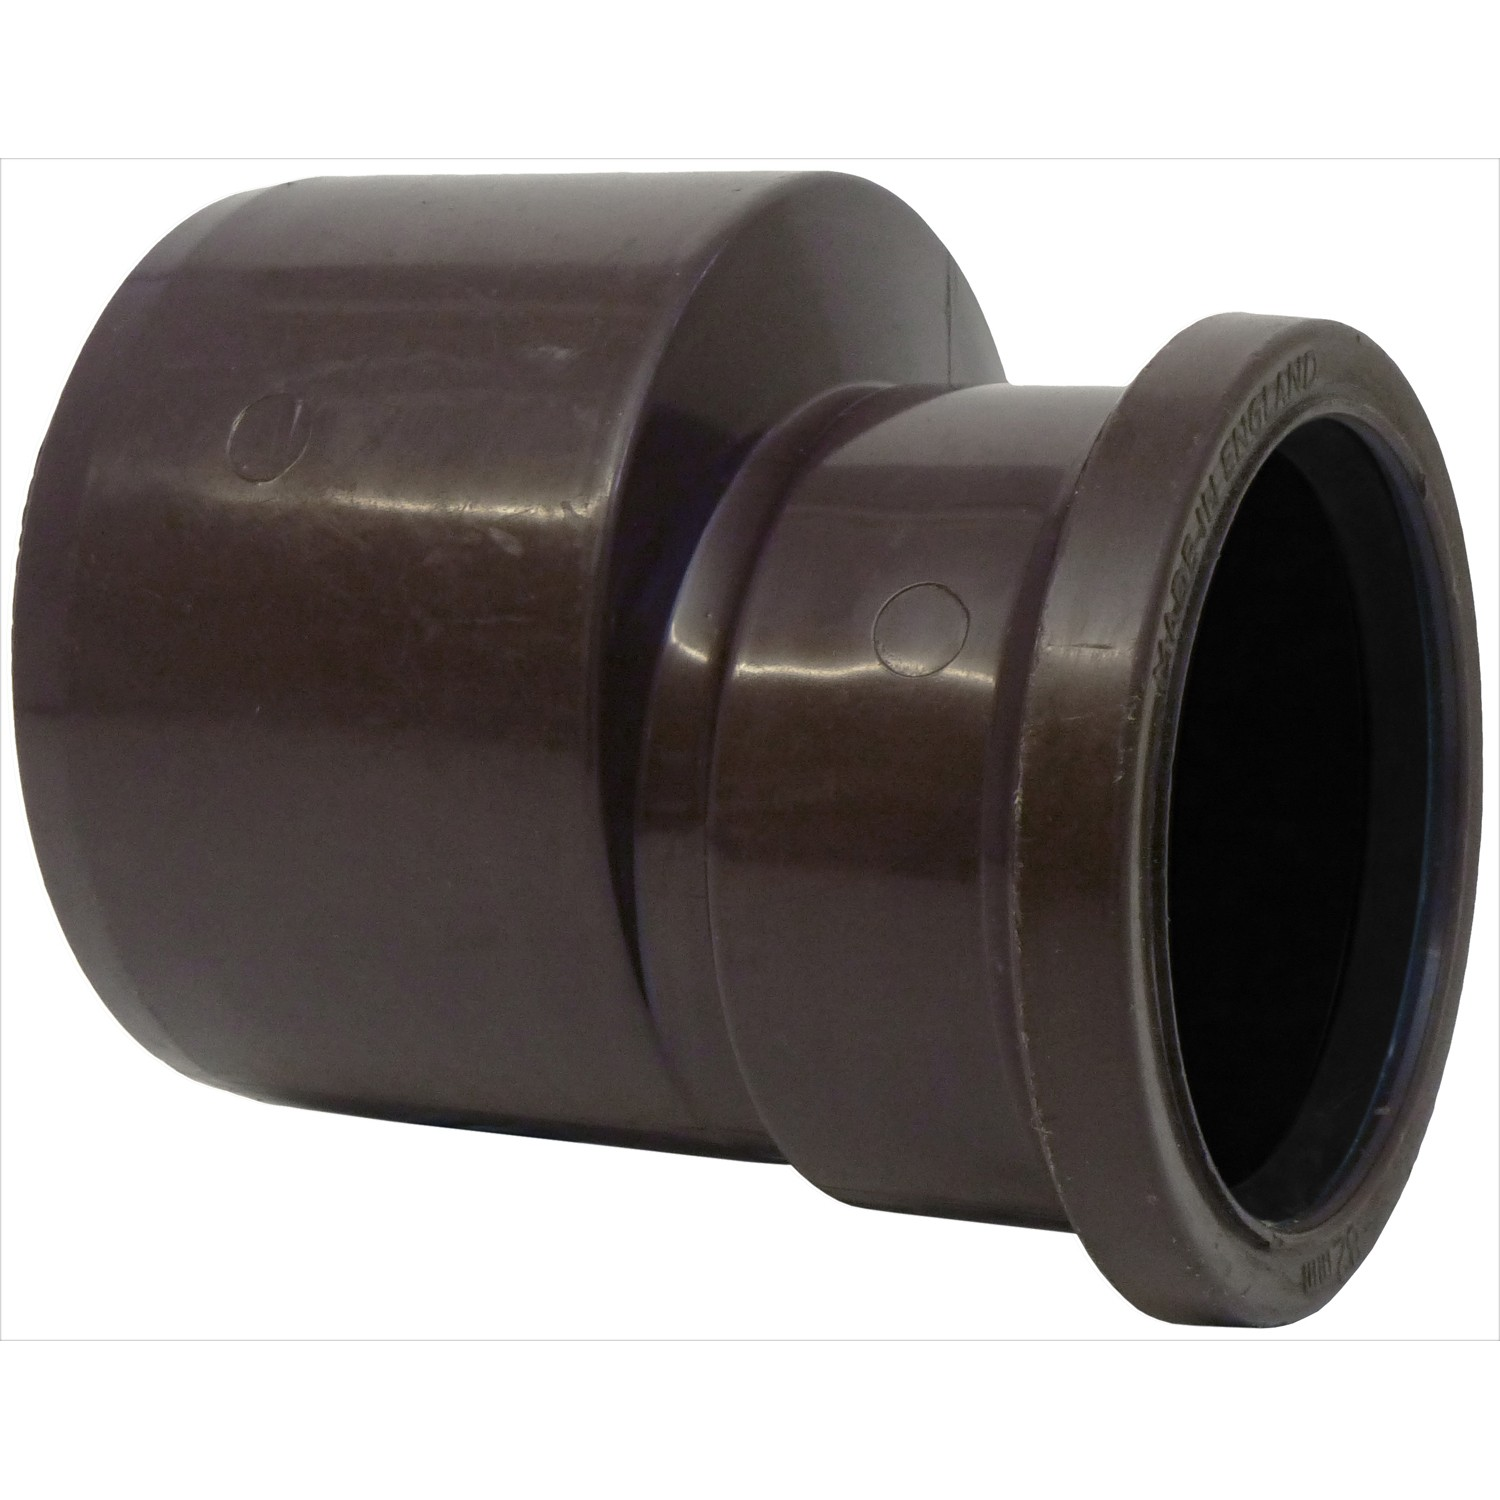 Polypipe 110mm To 82mm Soil Reducer - Brown